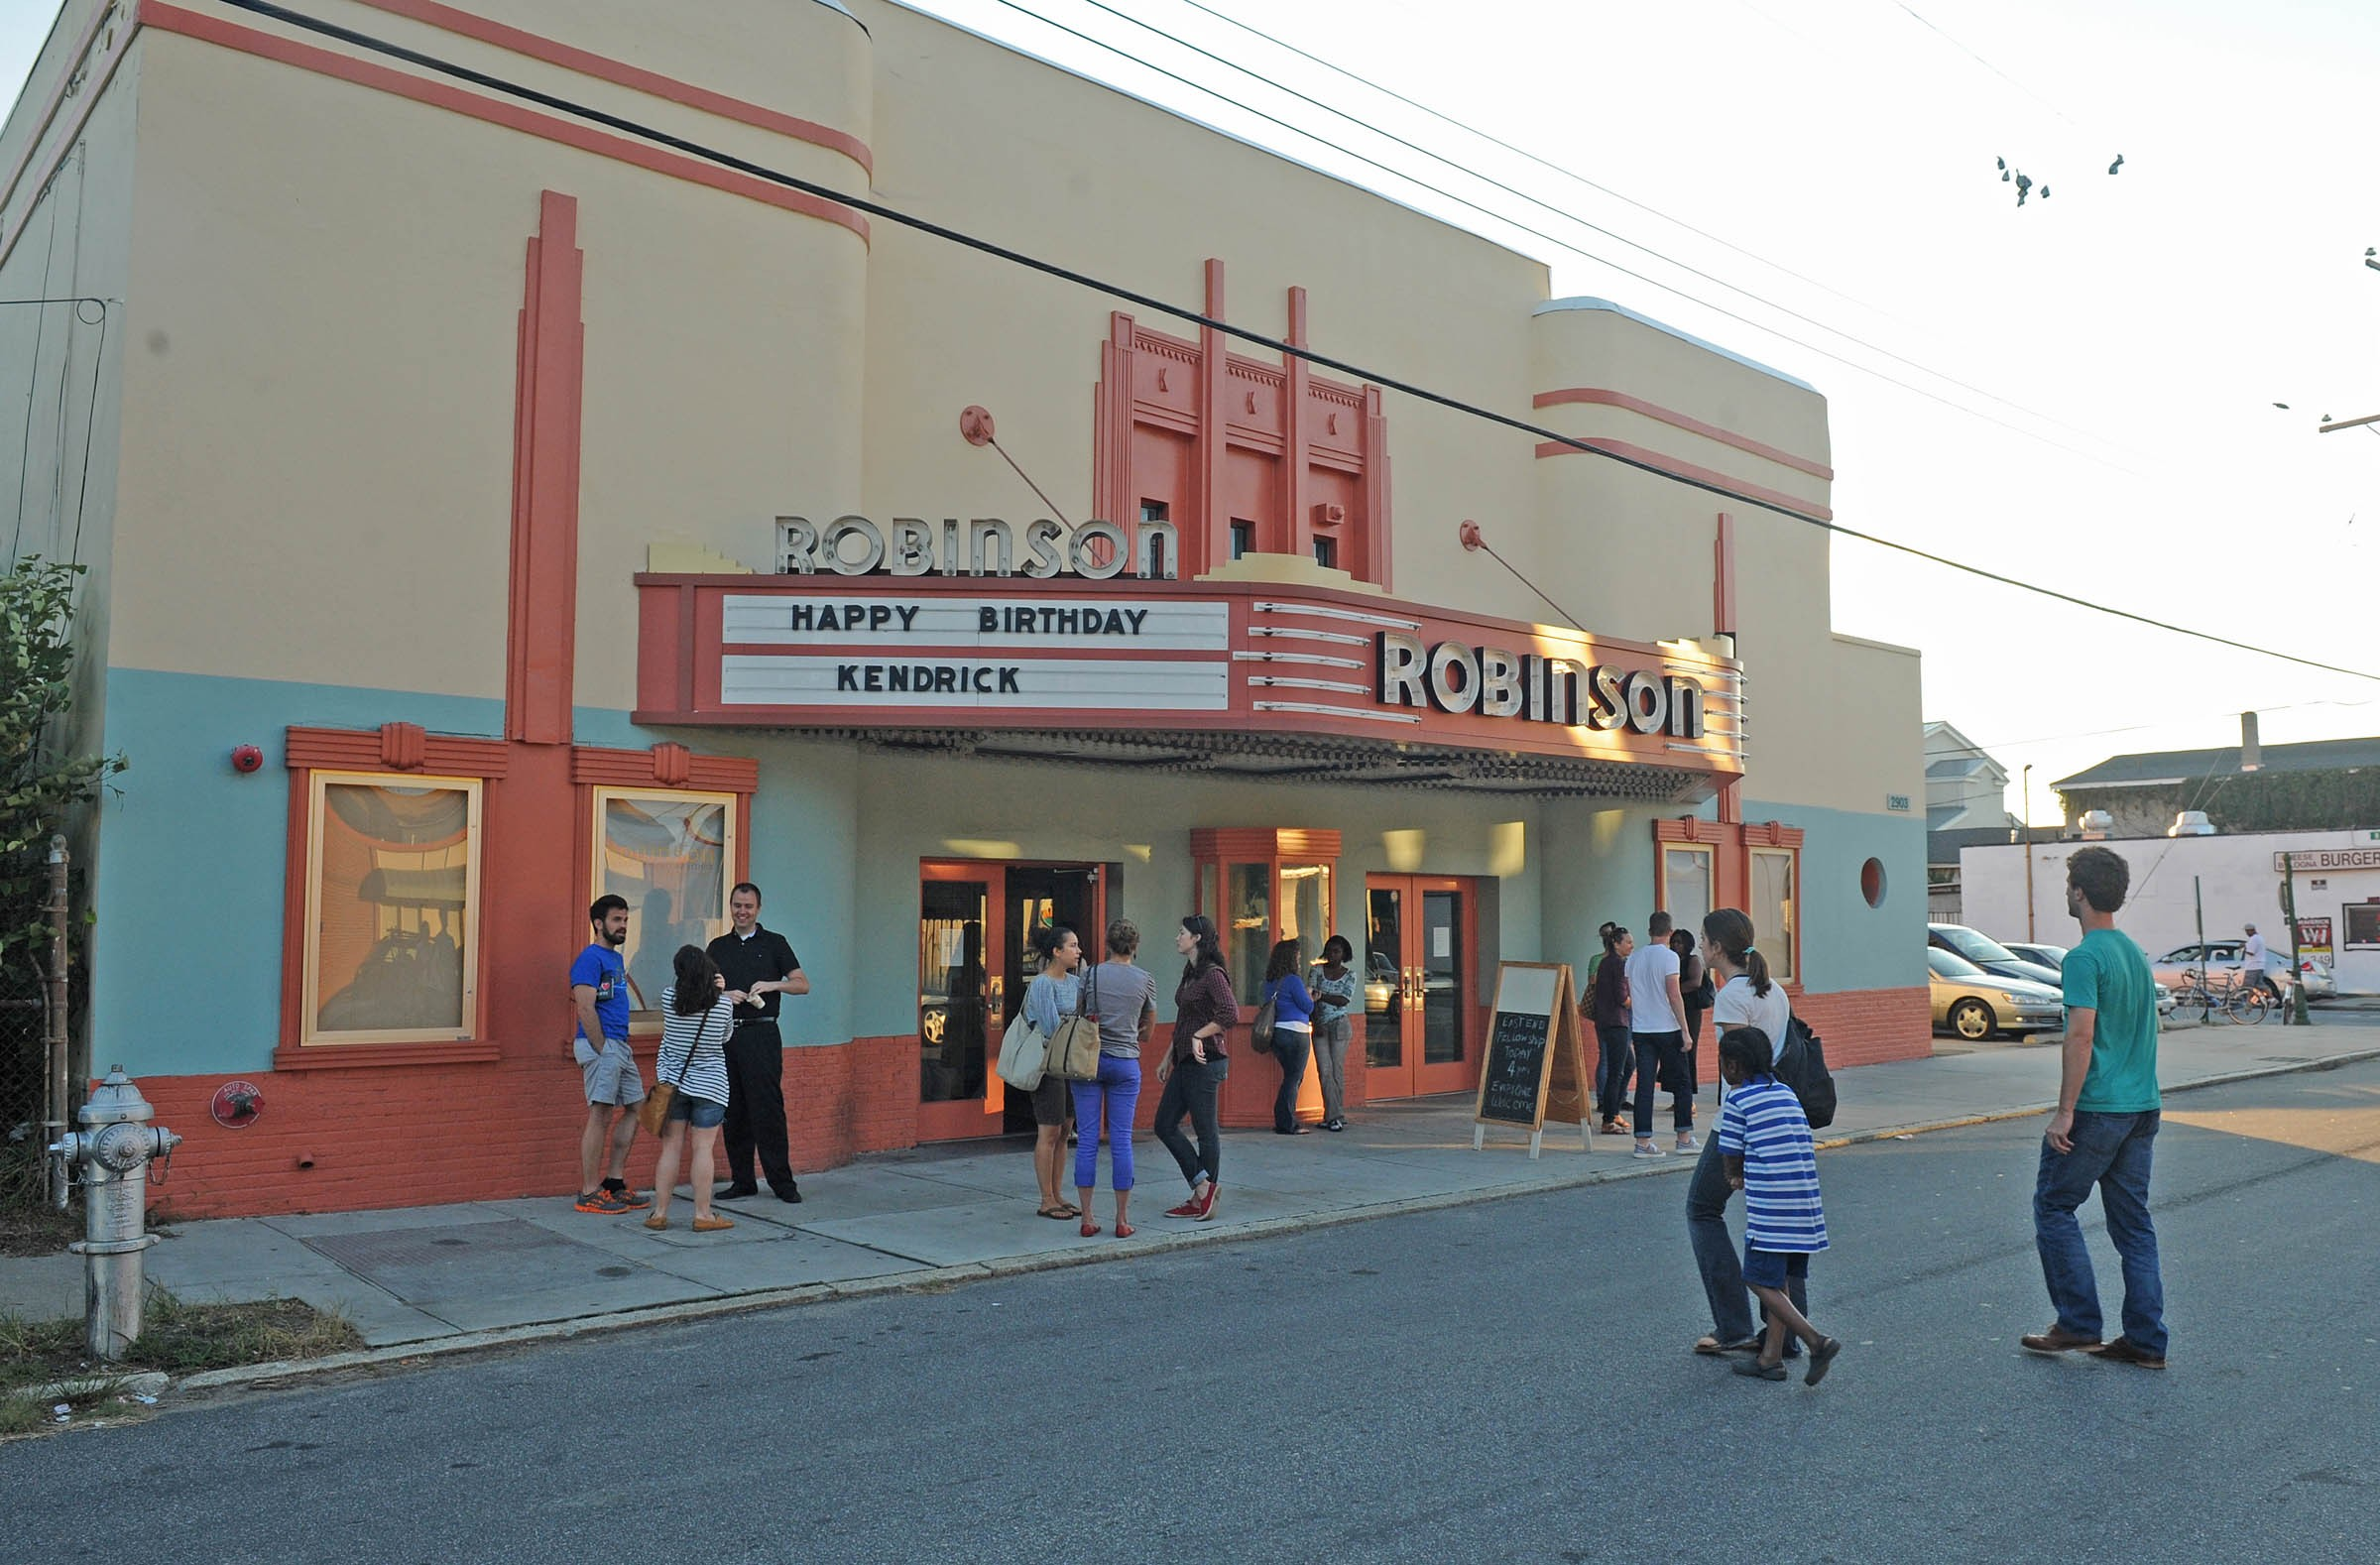 The nearly 80-year-old Robinson Theater was vacant for more than 20 years before being restored in 2009. - SCOTT ELMQUIST